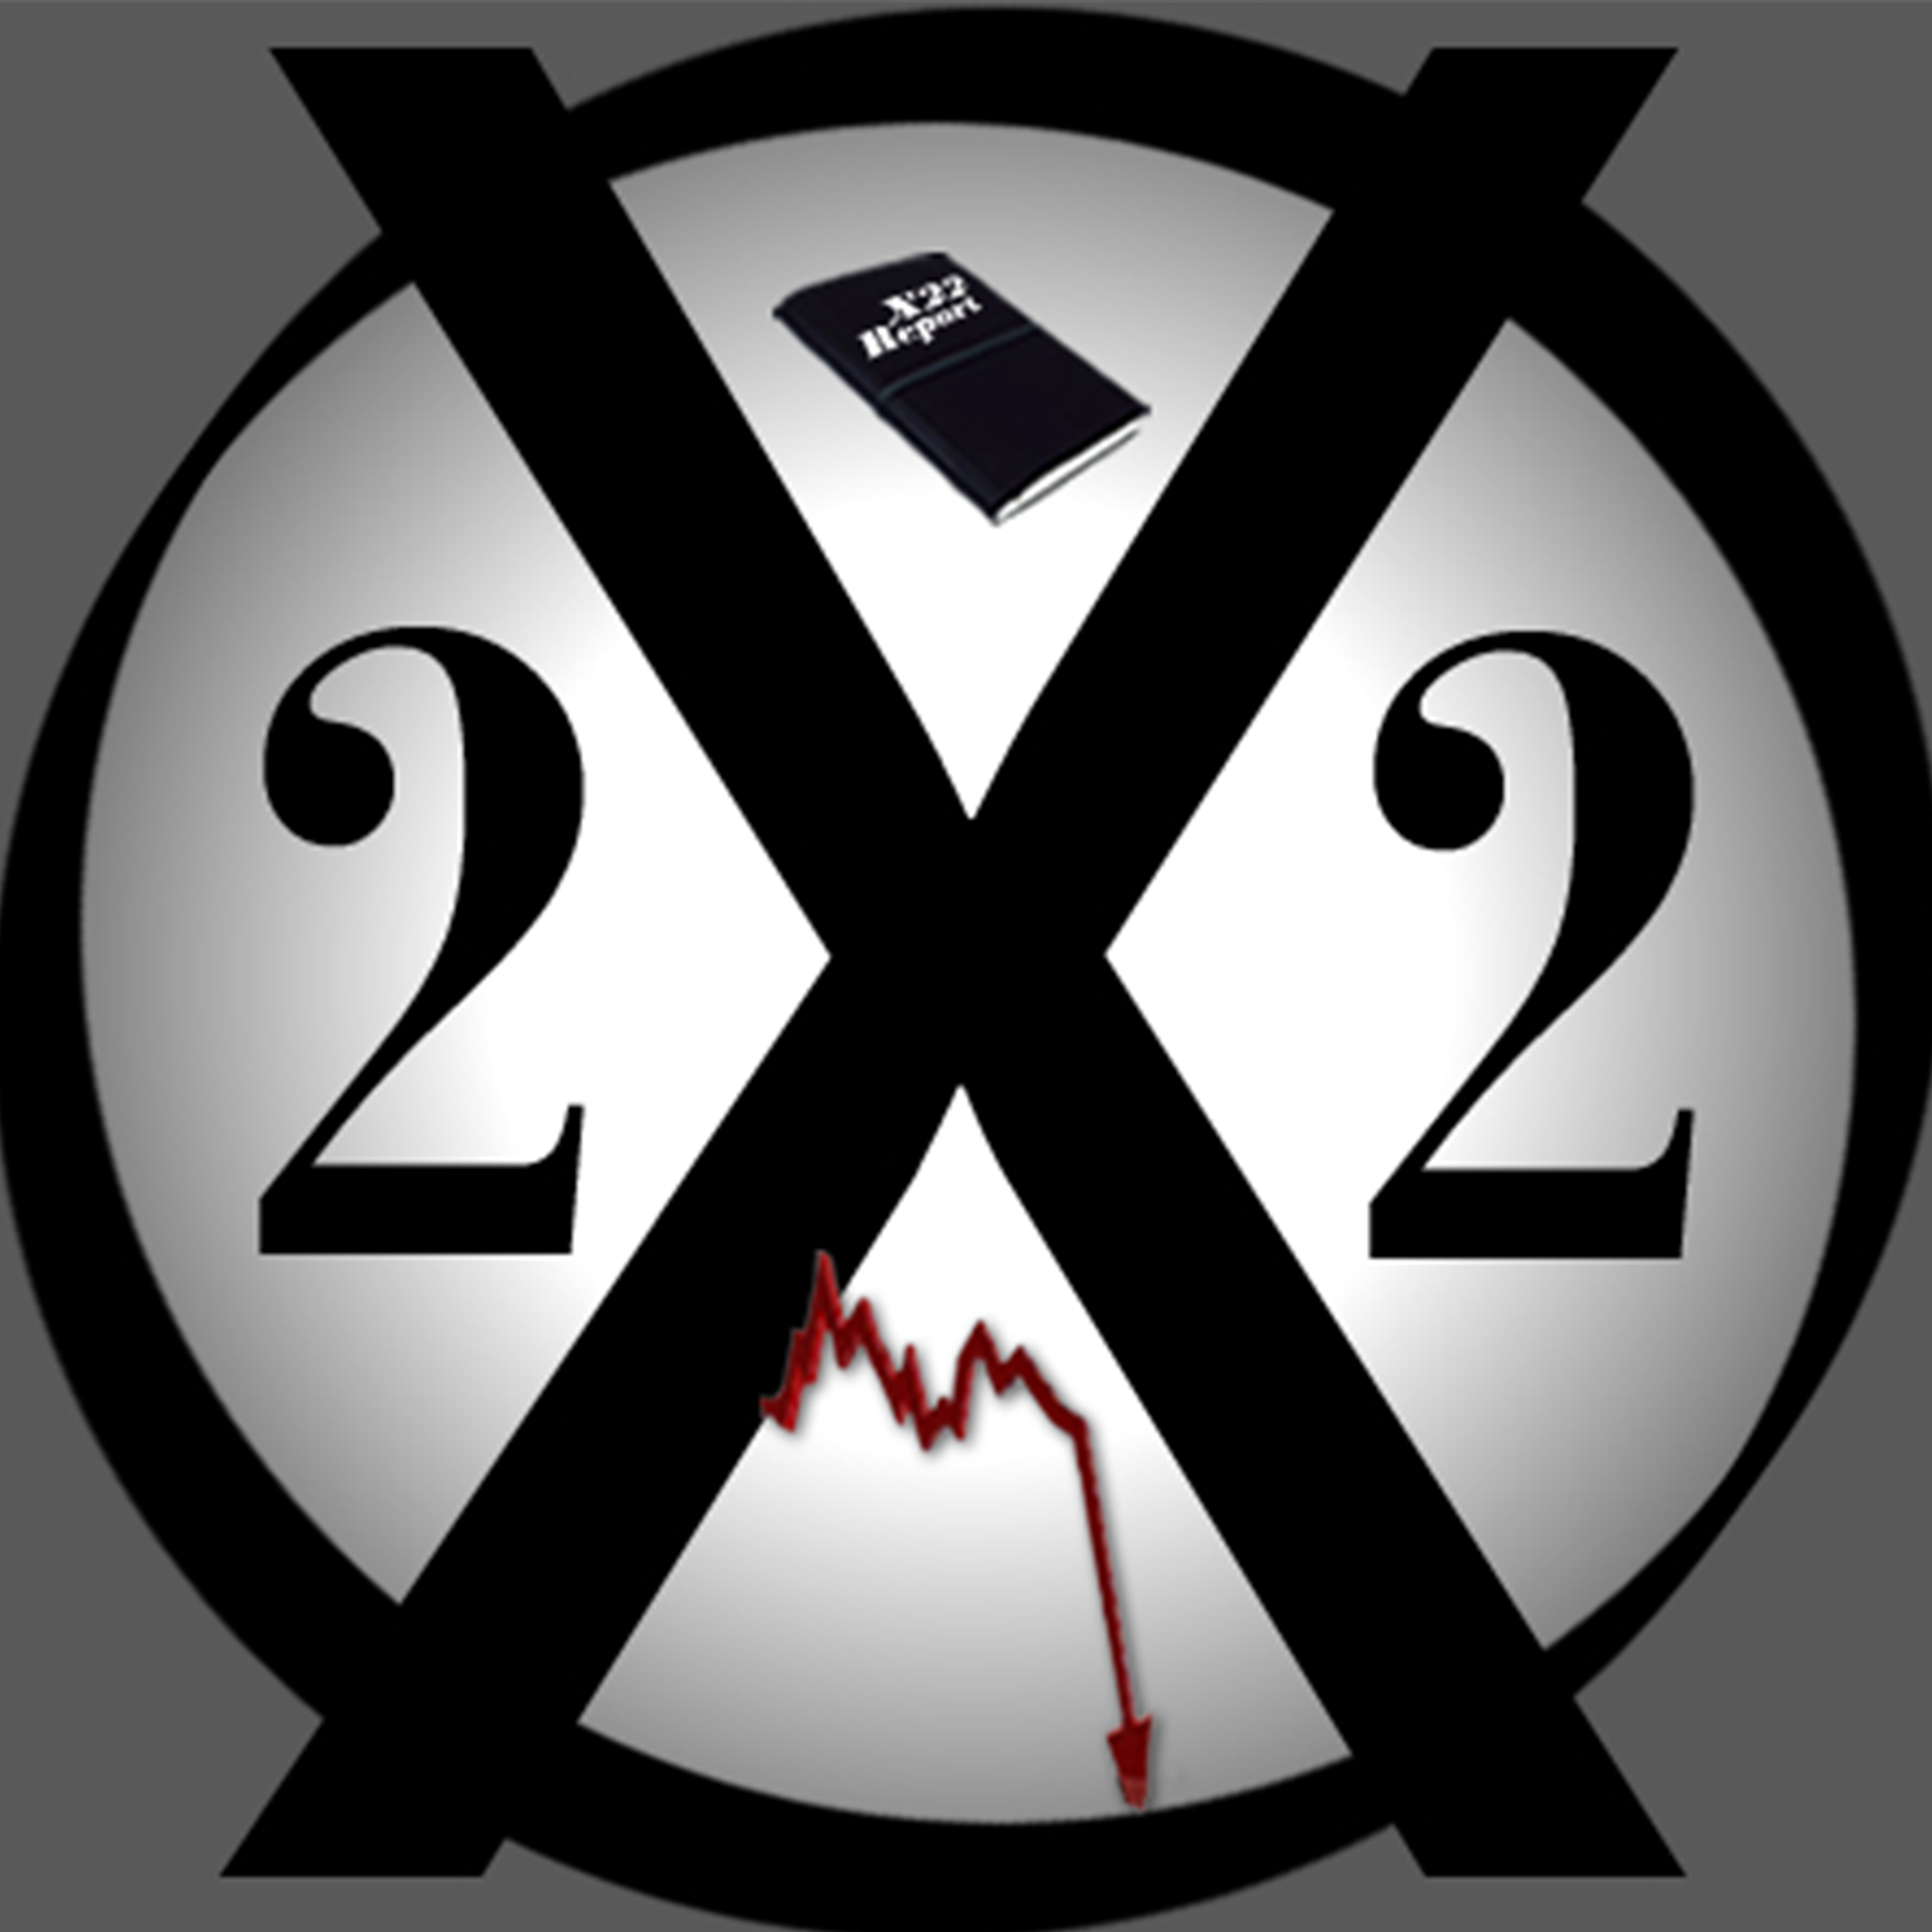 X22 Report on radio.com